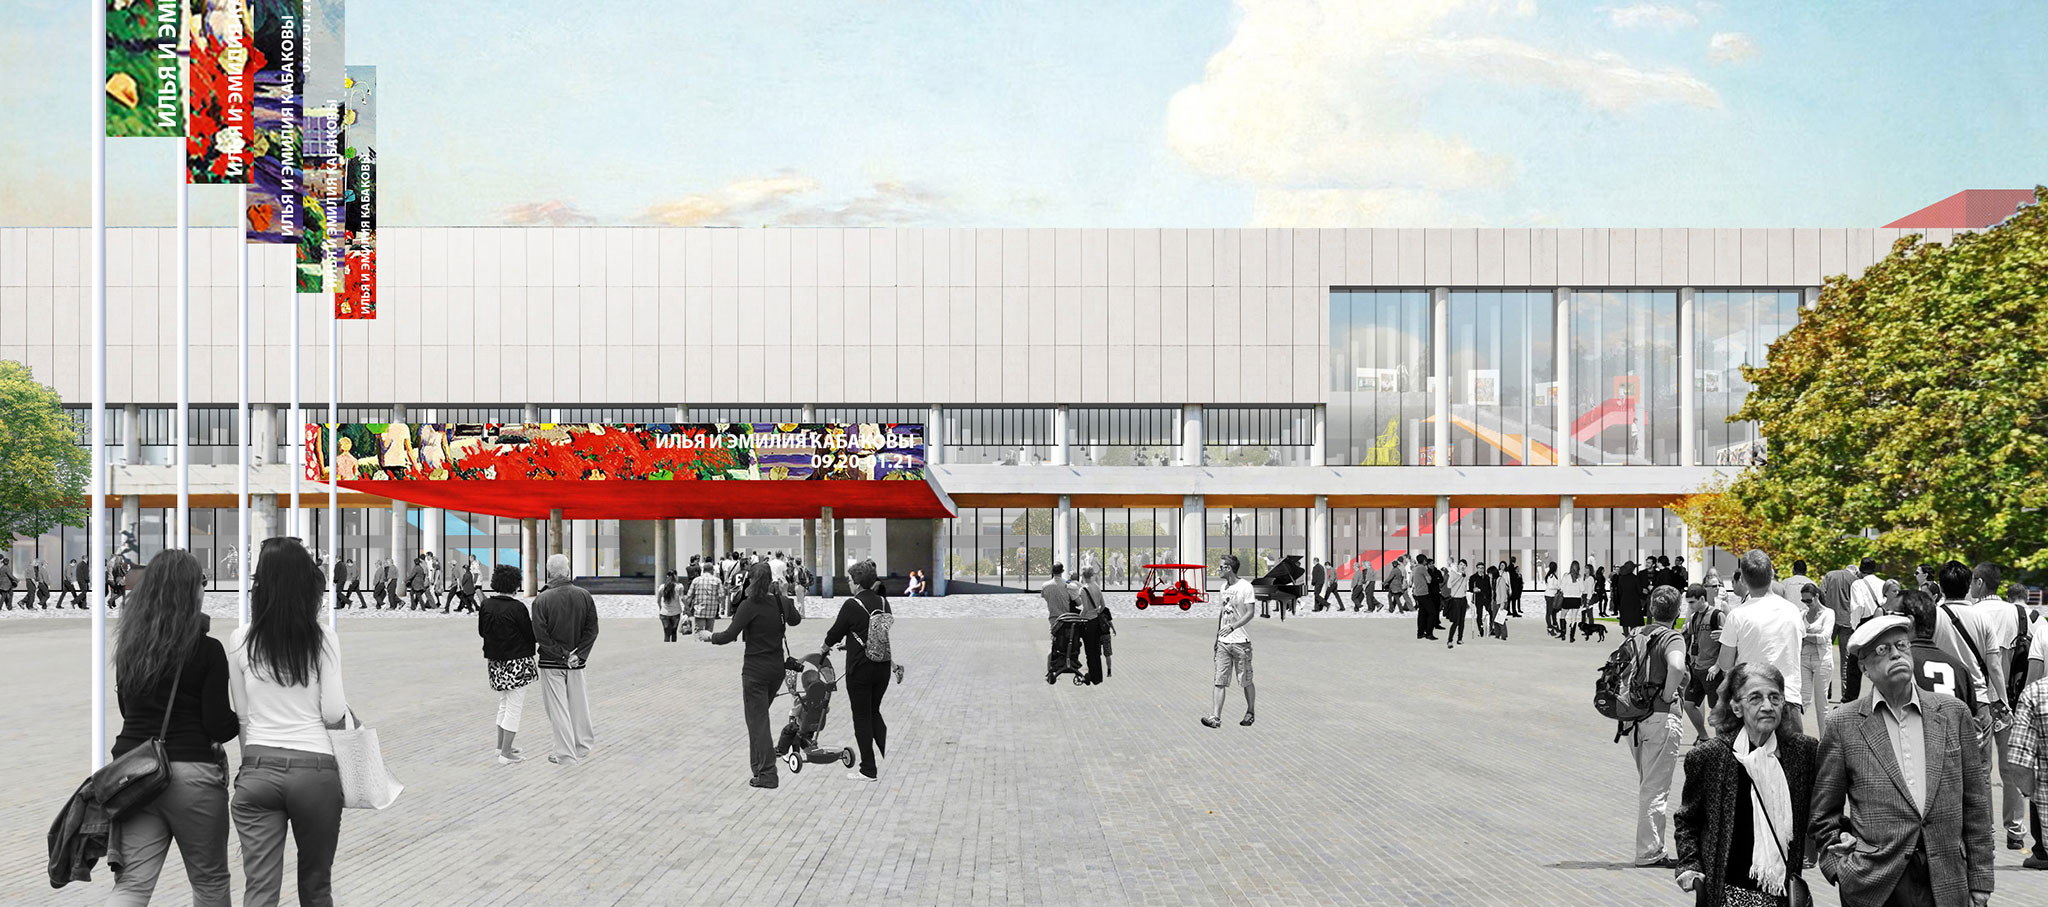 Exterior view, rendering. New Tretyakov Gallery in Moscow by OMA / Rem Koolhaas. Image courtesy OMA